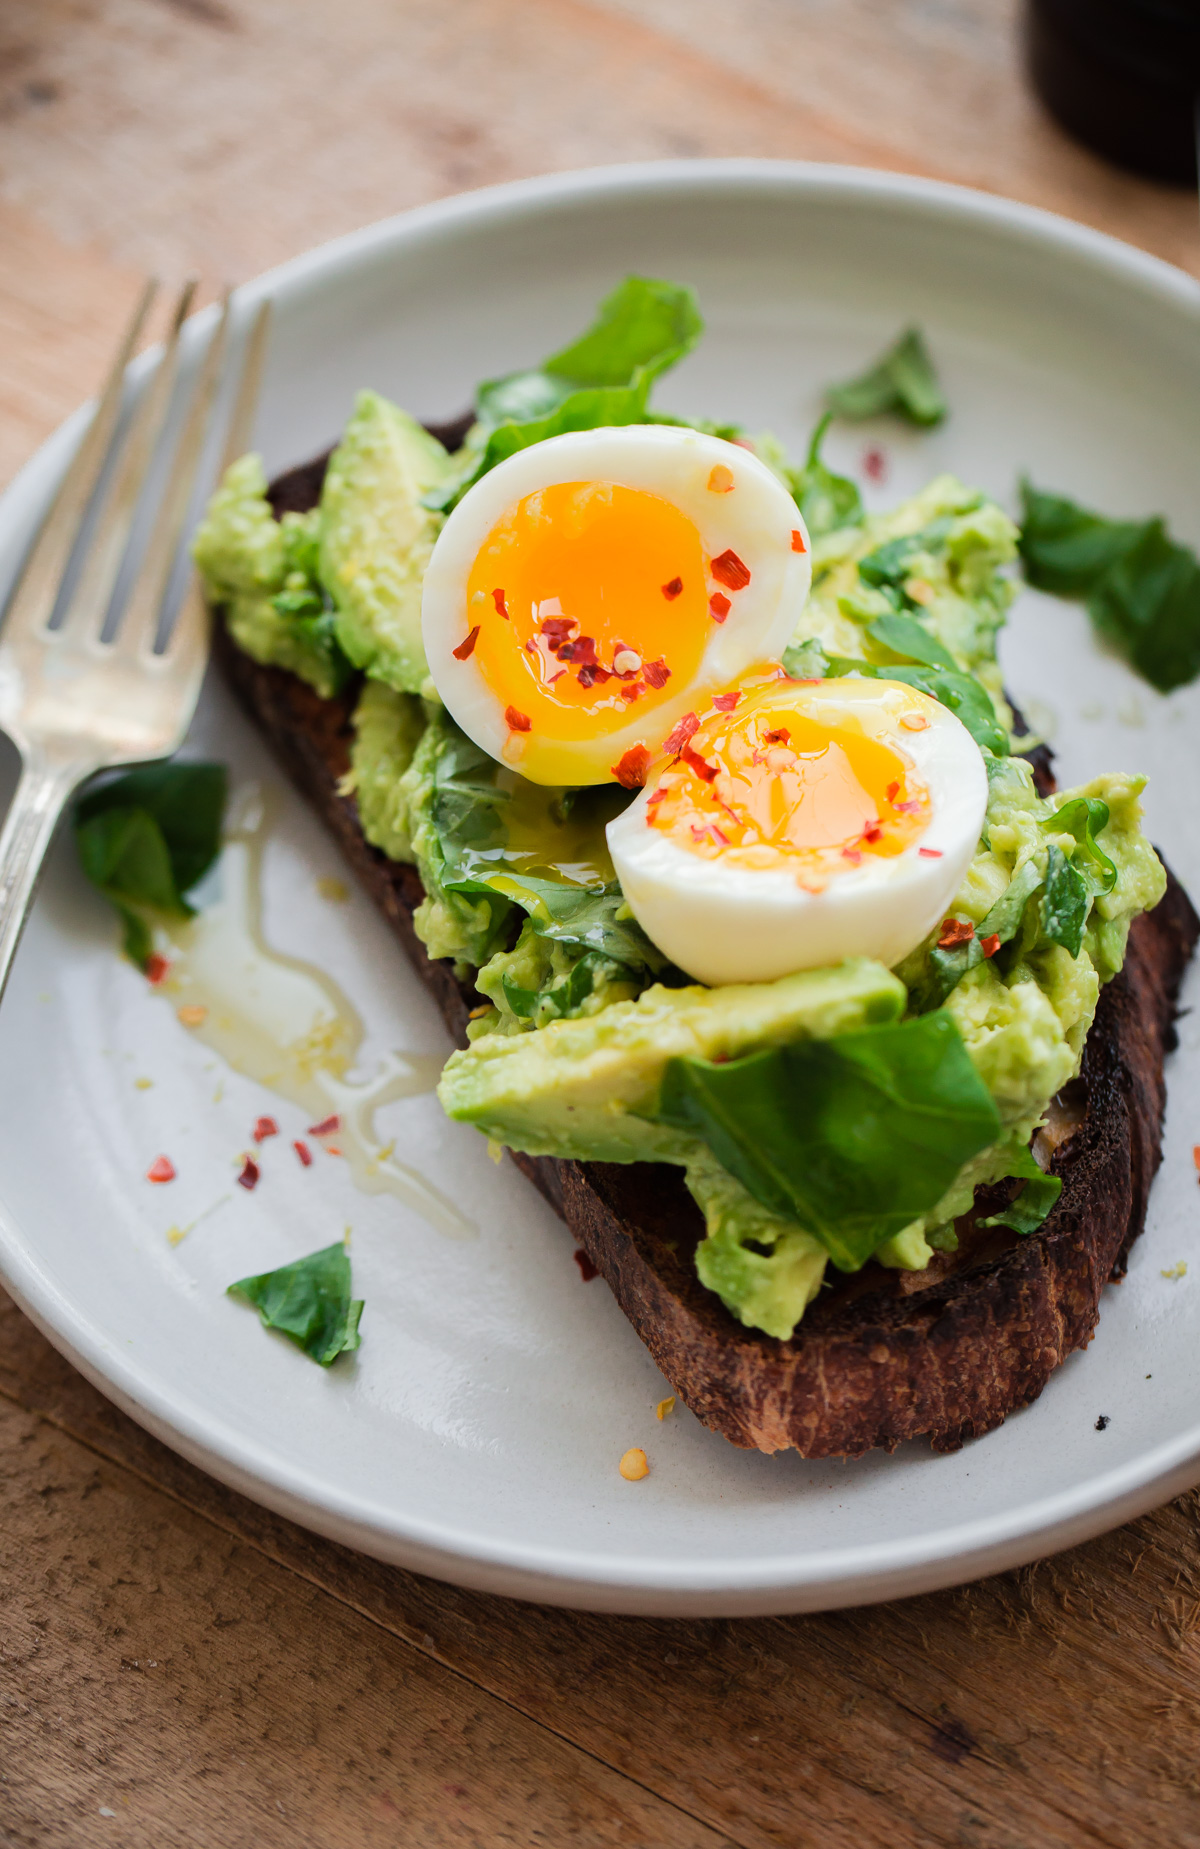 Fancy Avocado Toast - 10 Mother's Day Recipe Ideas. Sweets and dessert recipes to spoil your mama!